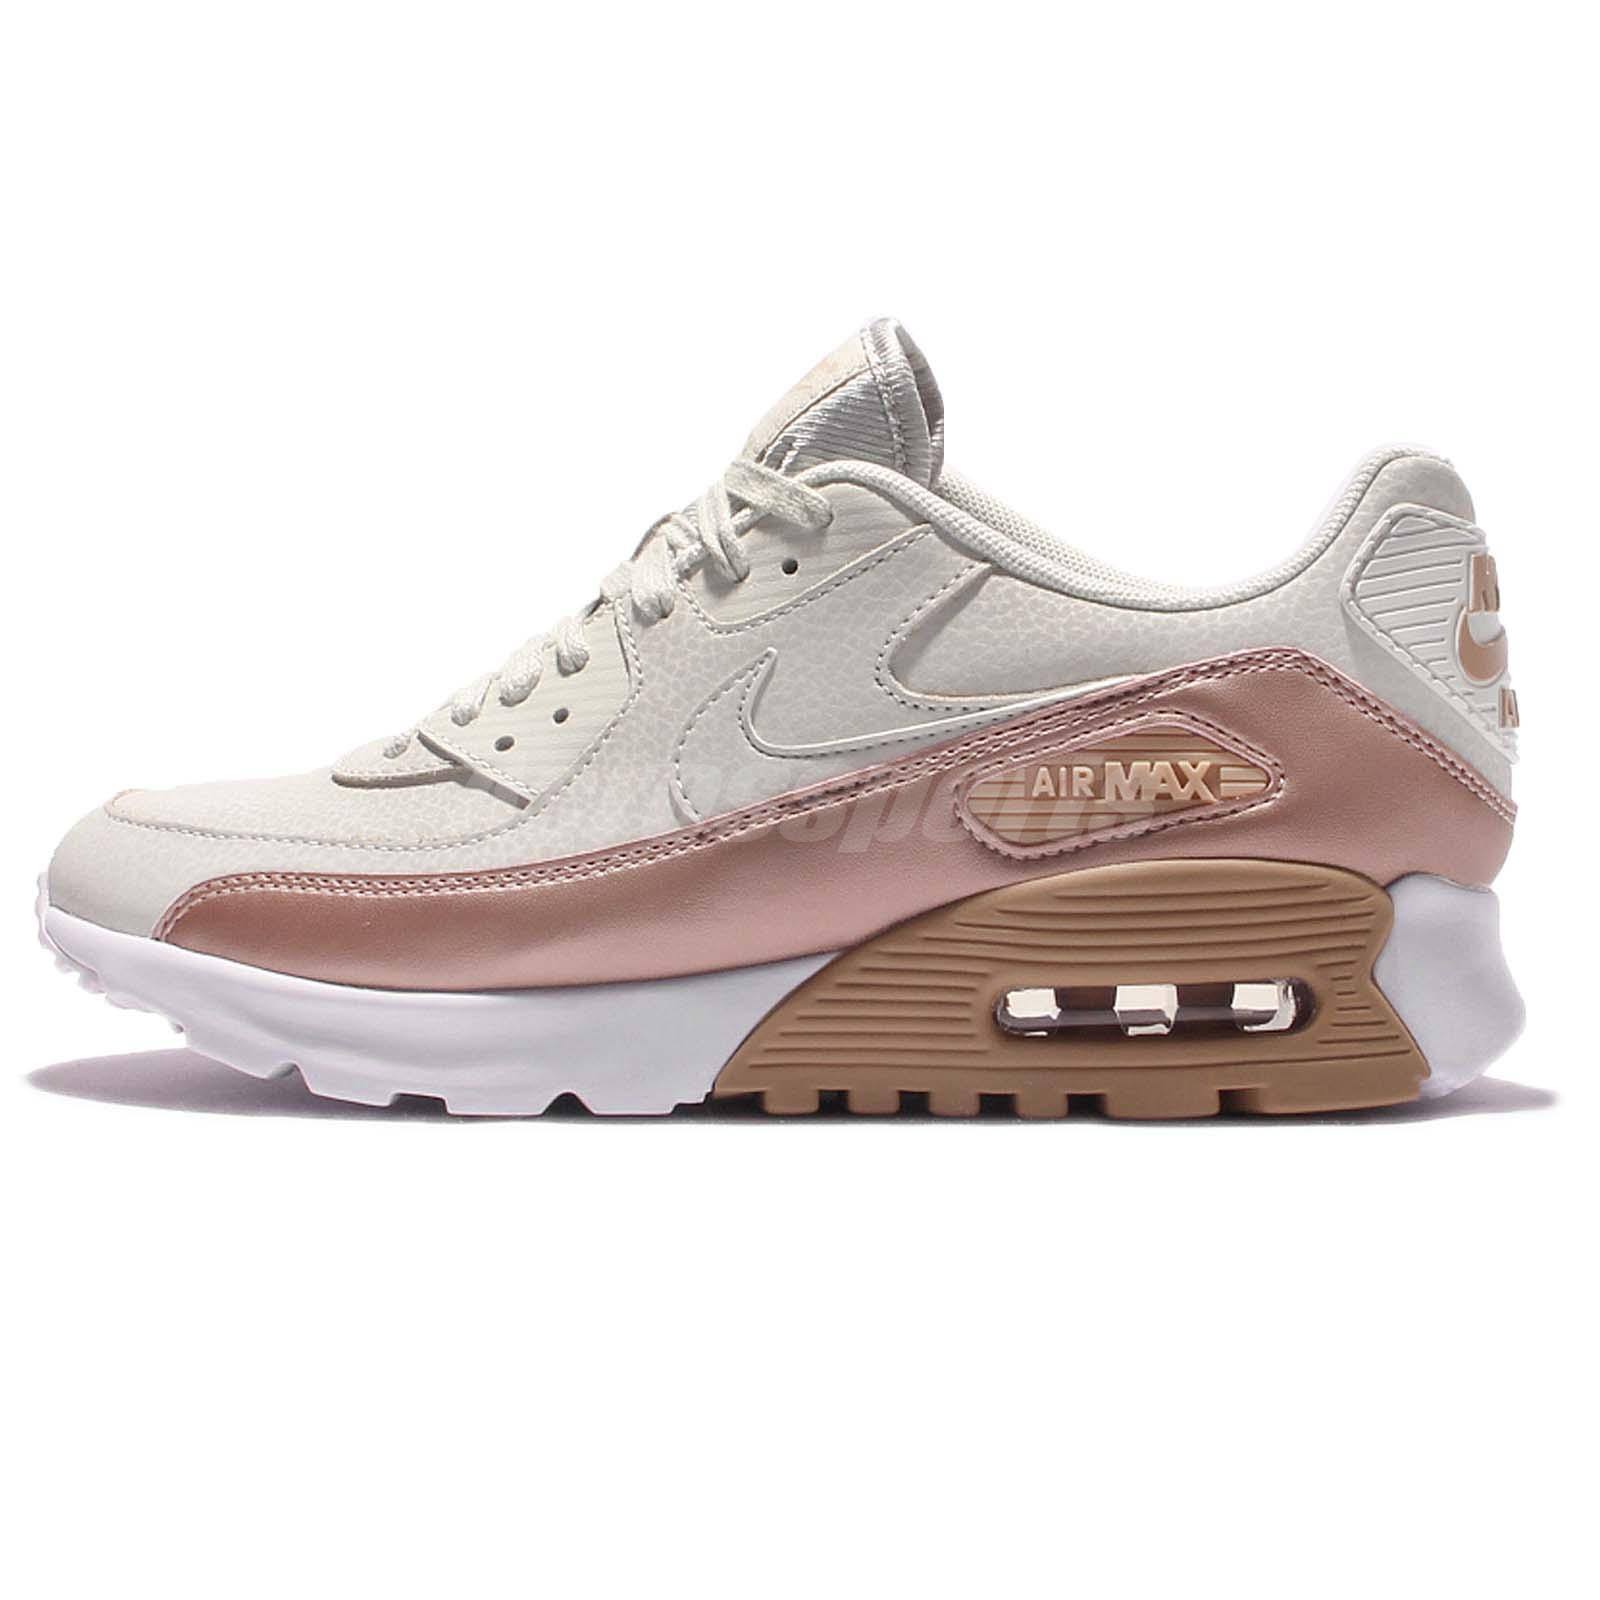 new arrival 2450a 91e4f new zealand nike air max 90 women gold 4884c ceb64